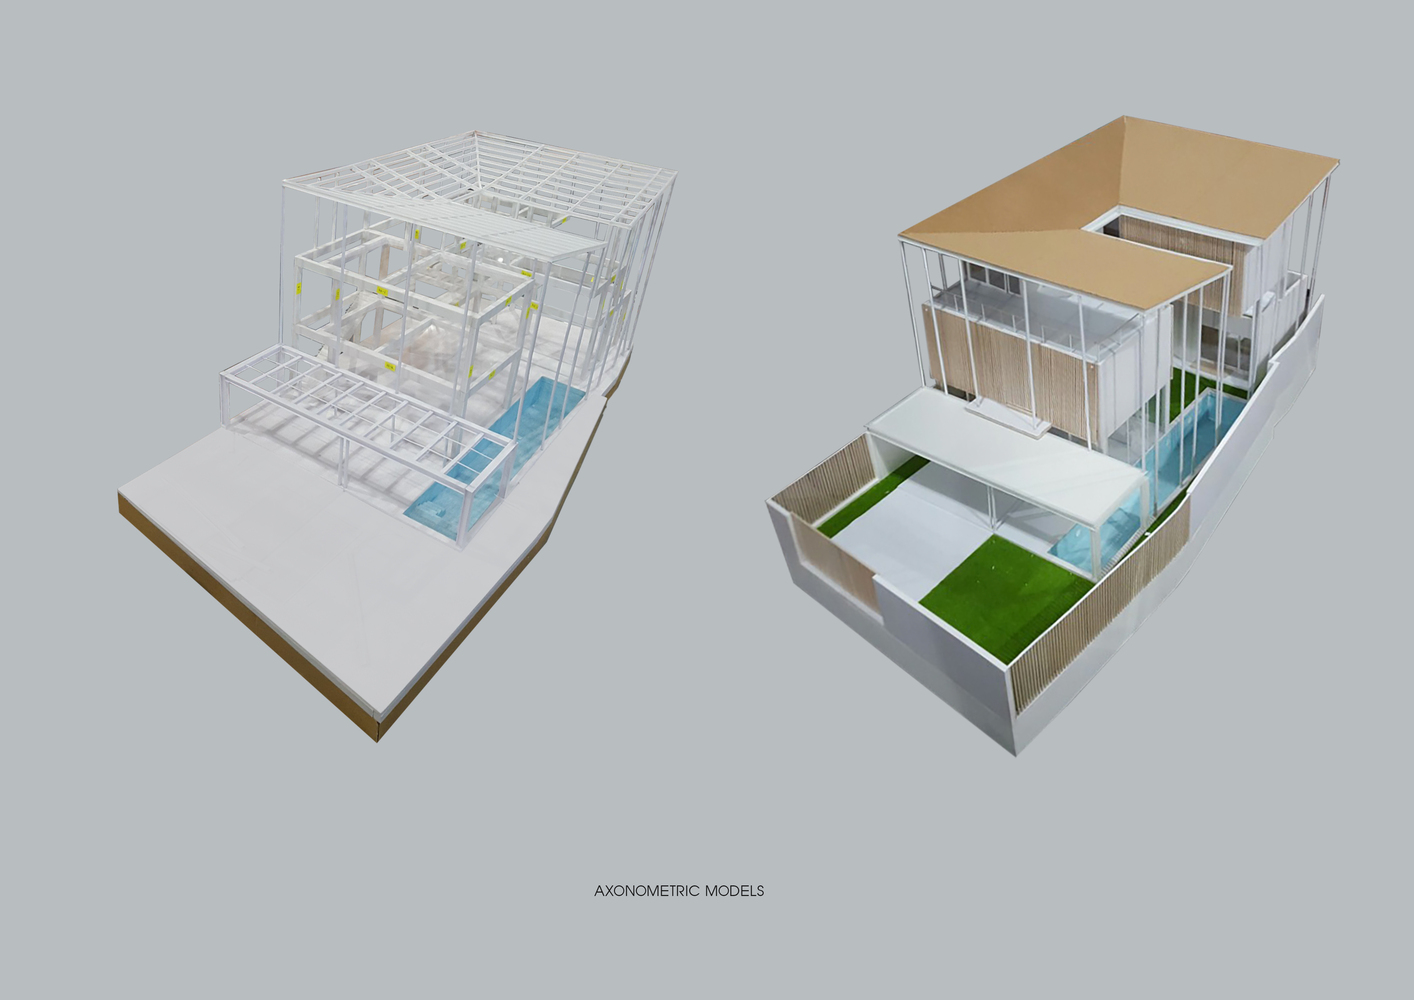 PT_Axonometric_Models